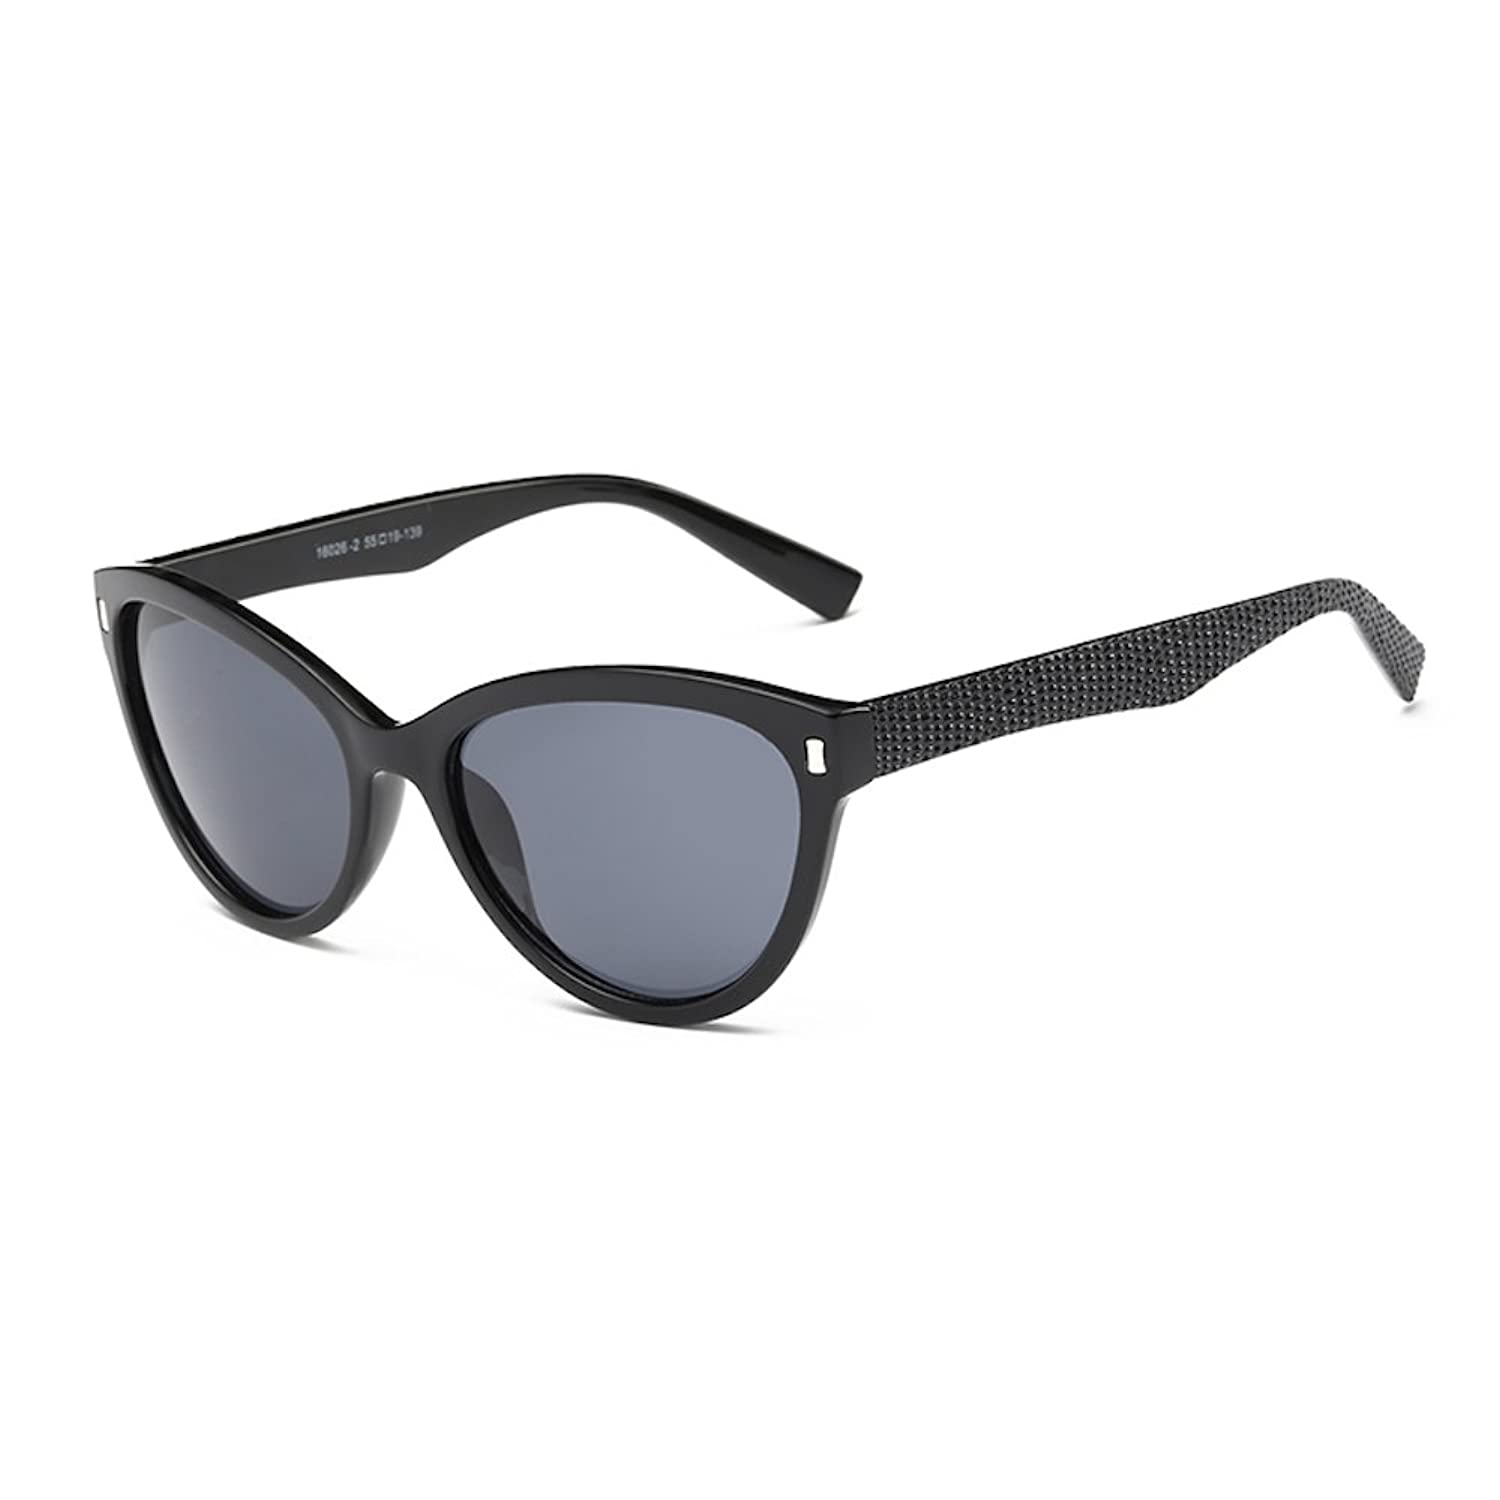 Shiny Black Frame, Cat-eye Sunglasses with Dark Grey Lens 55MM